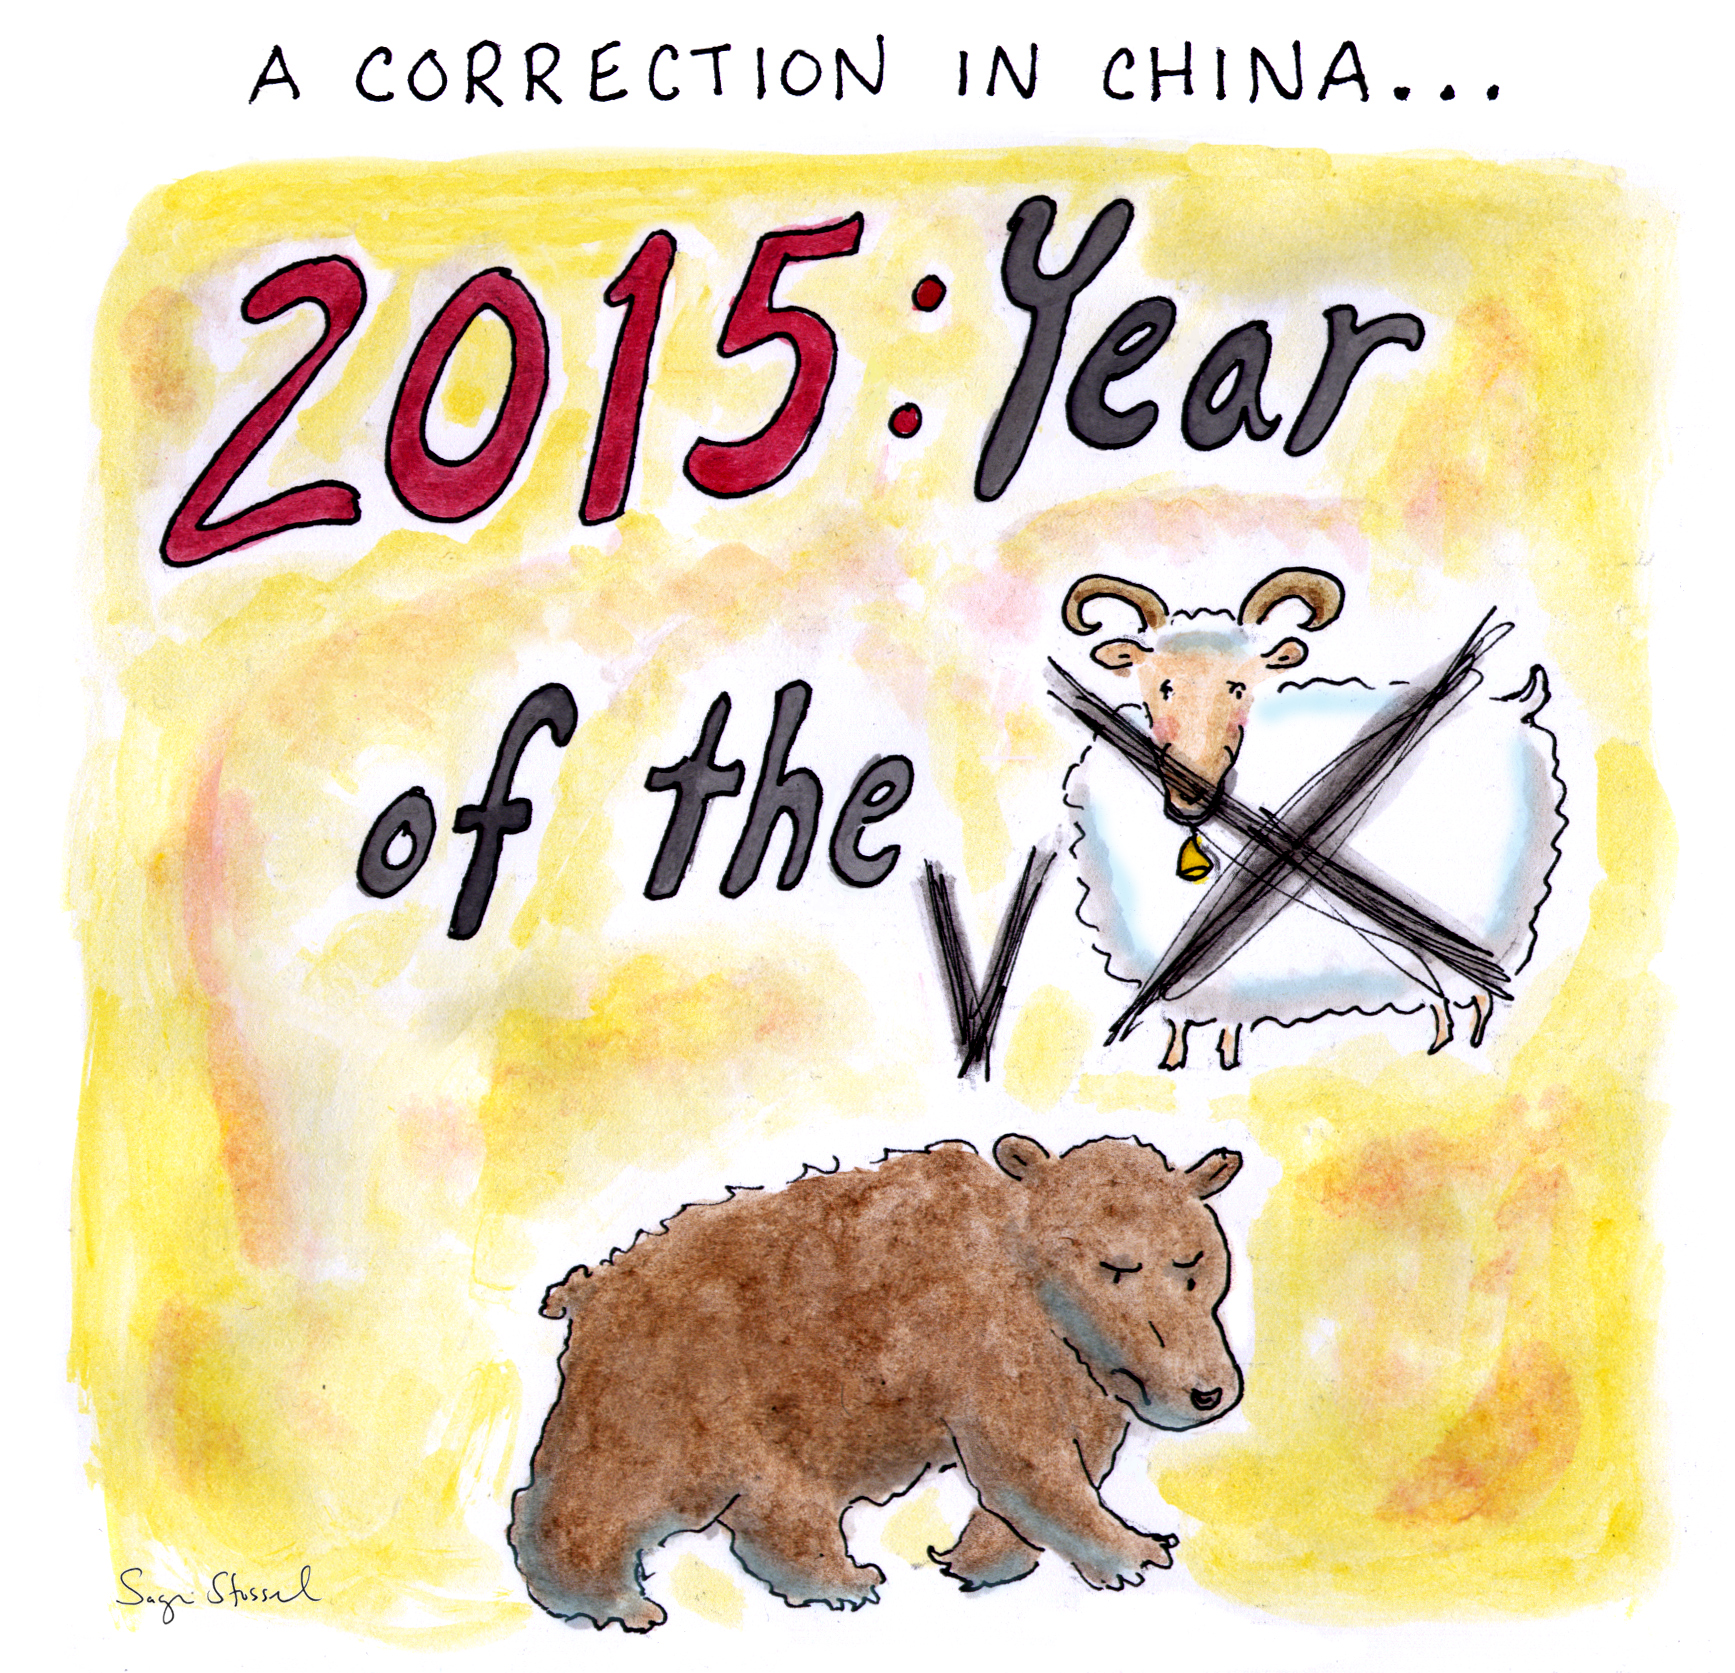 china, stock market, emerging markets, dow, volatility, global recession, risks,instability, currency, chinese zodiac, year of the sheep, august 2015, cartoon